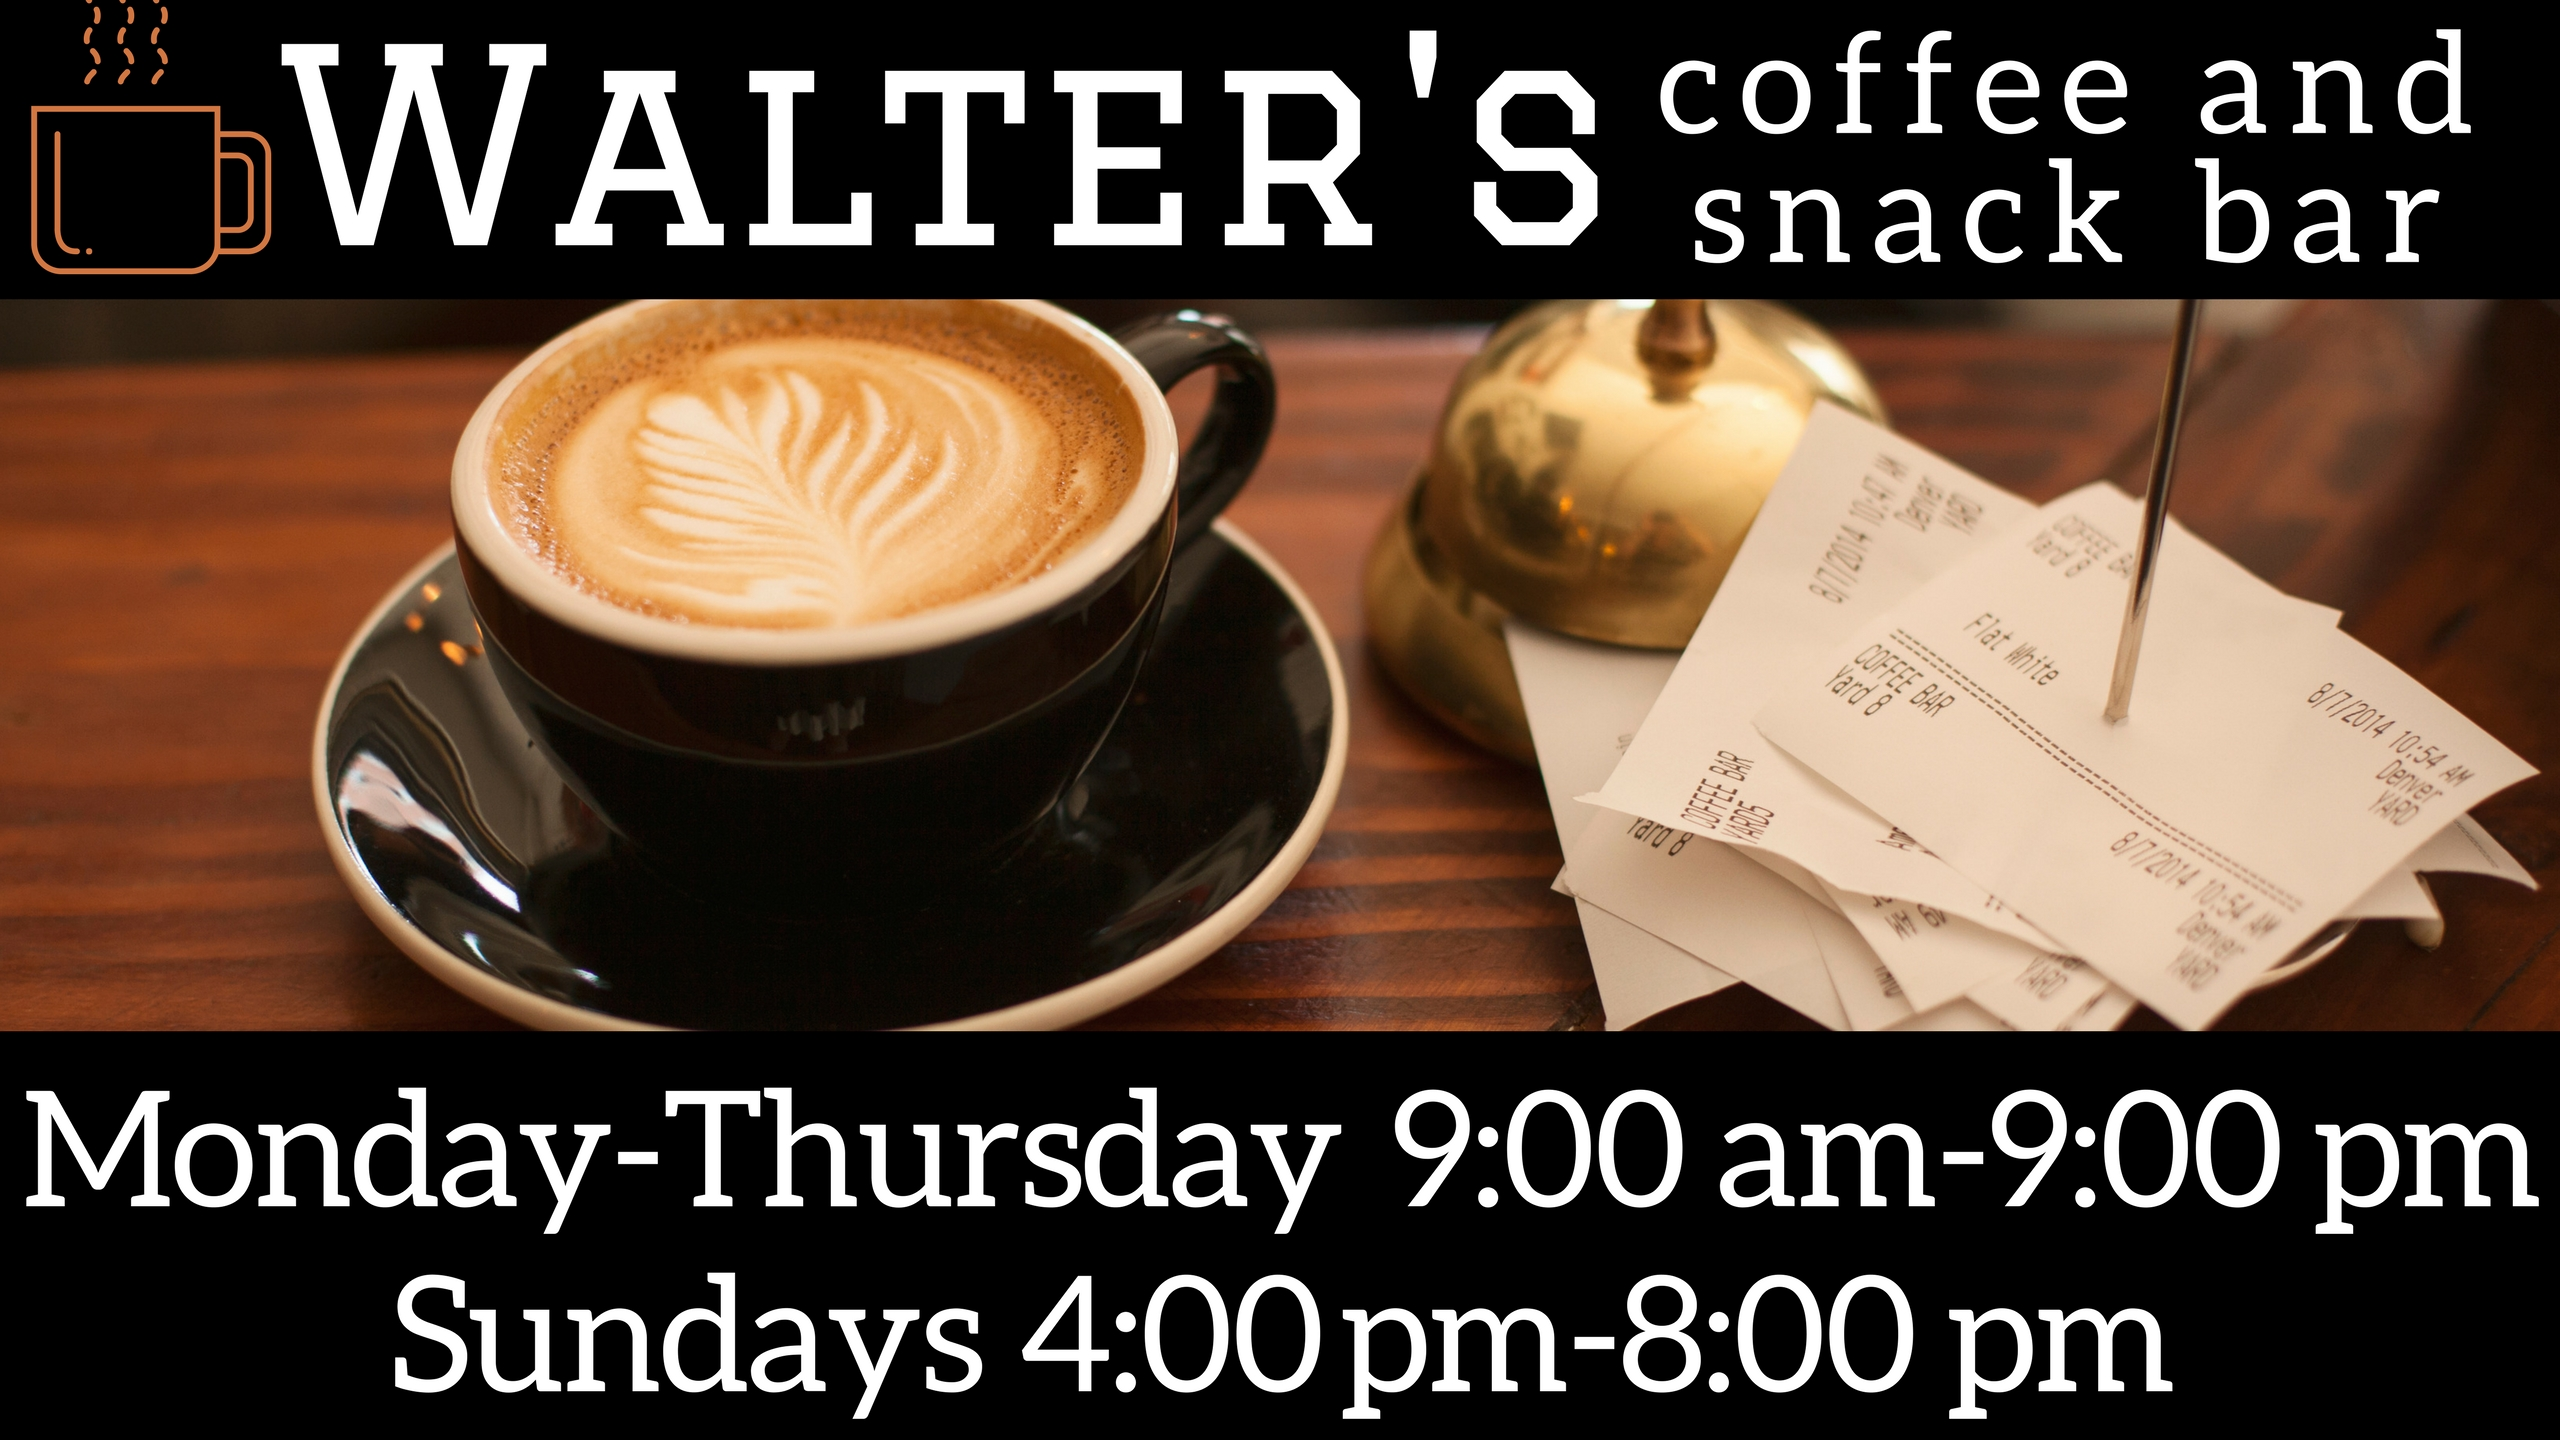 Walter's Coffee and Snack Bar